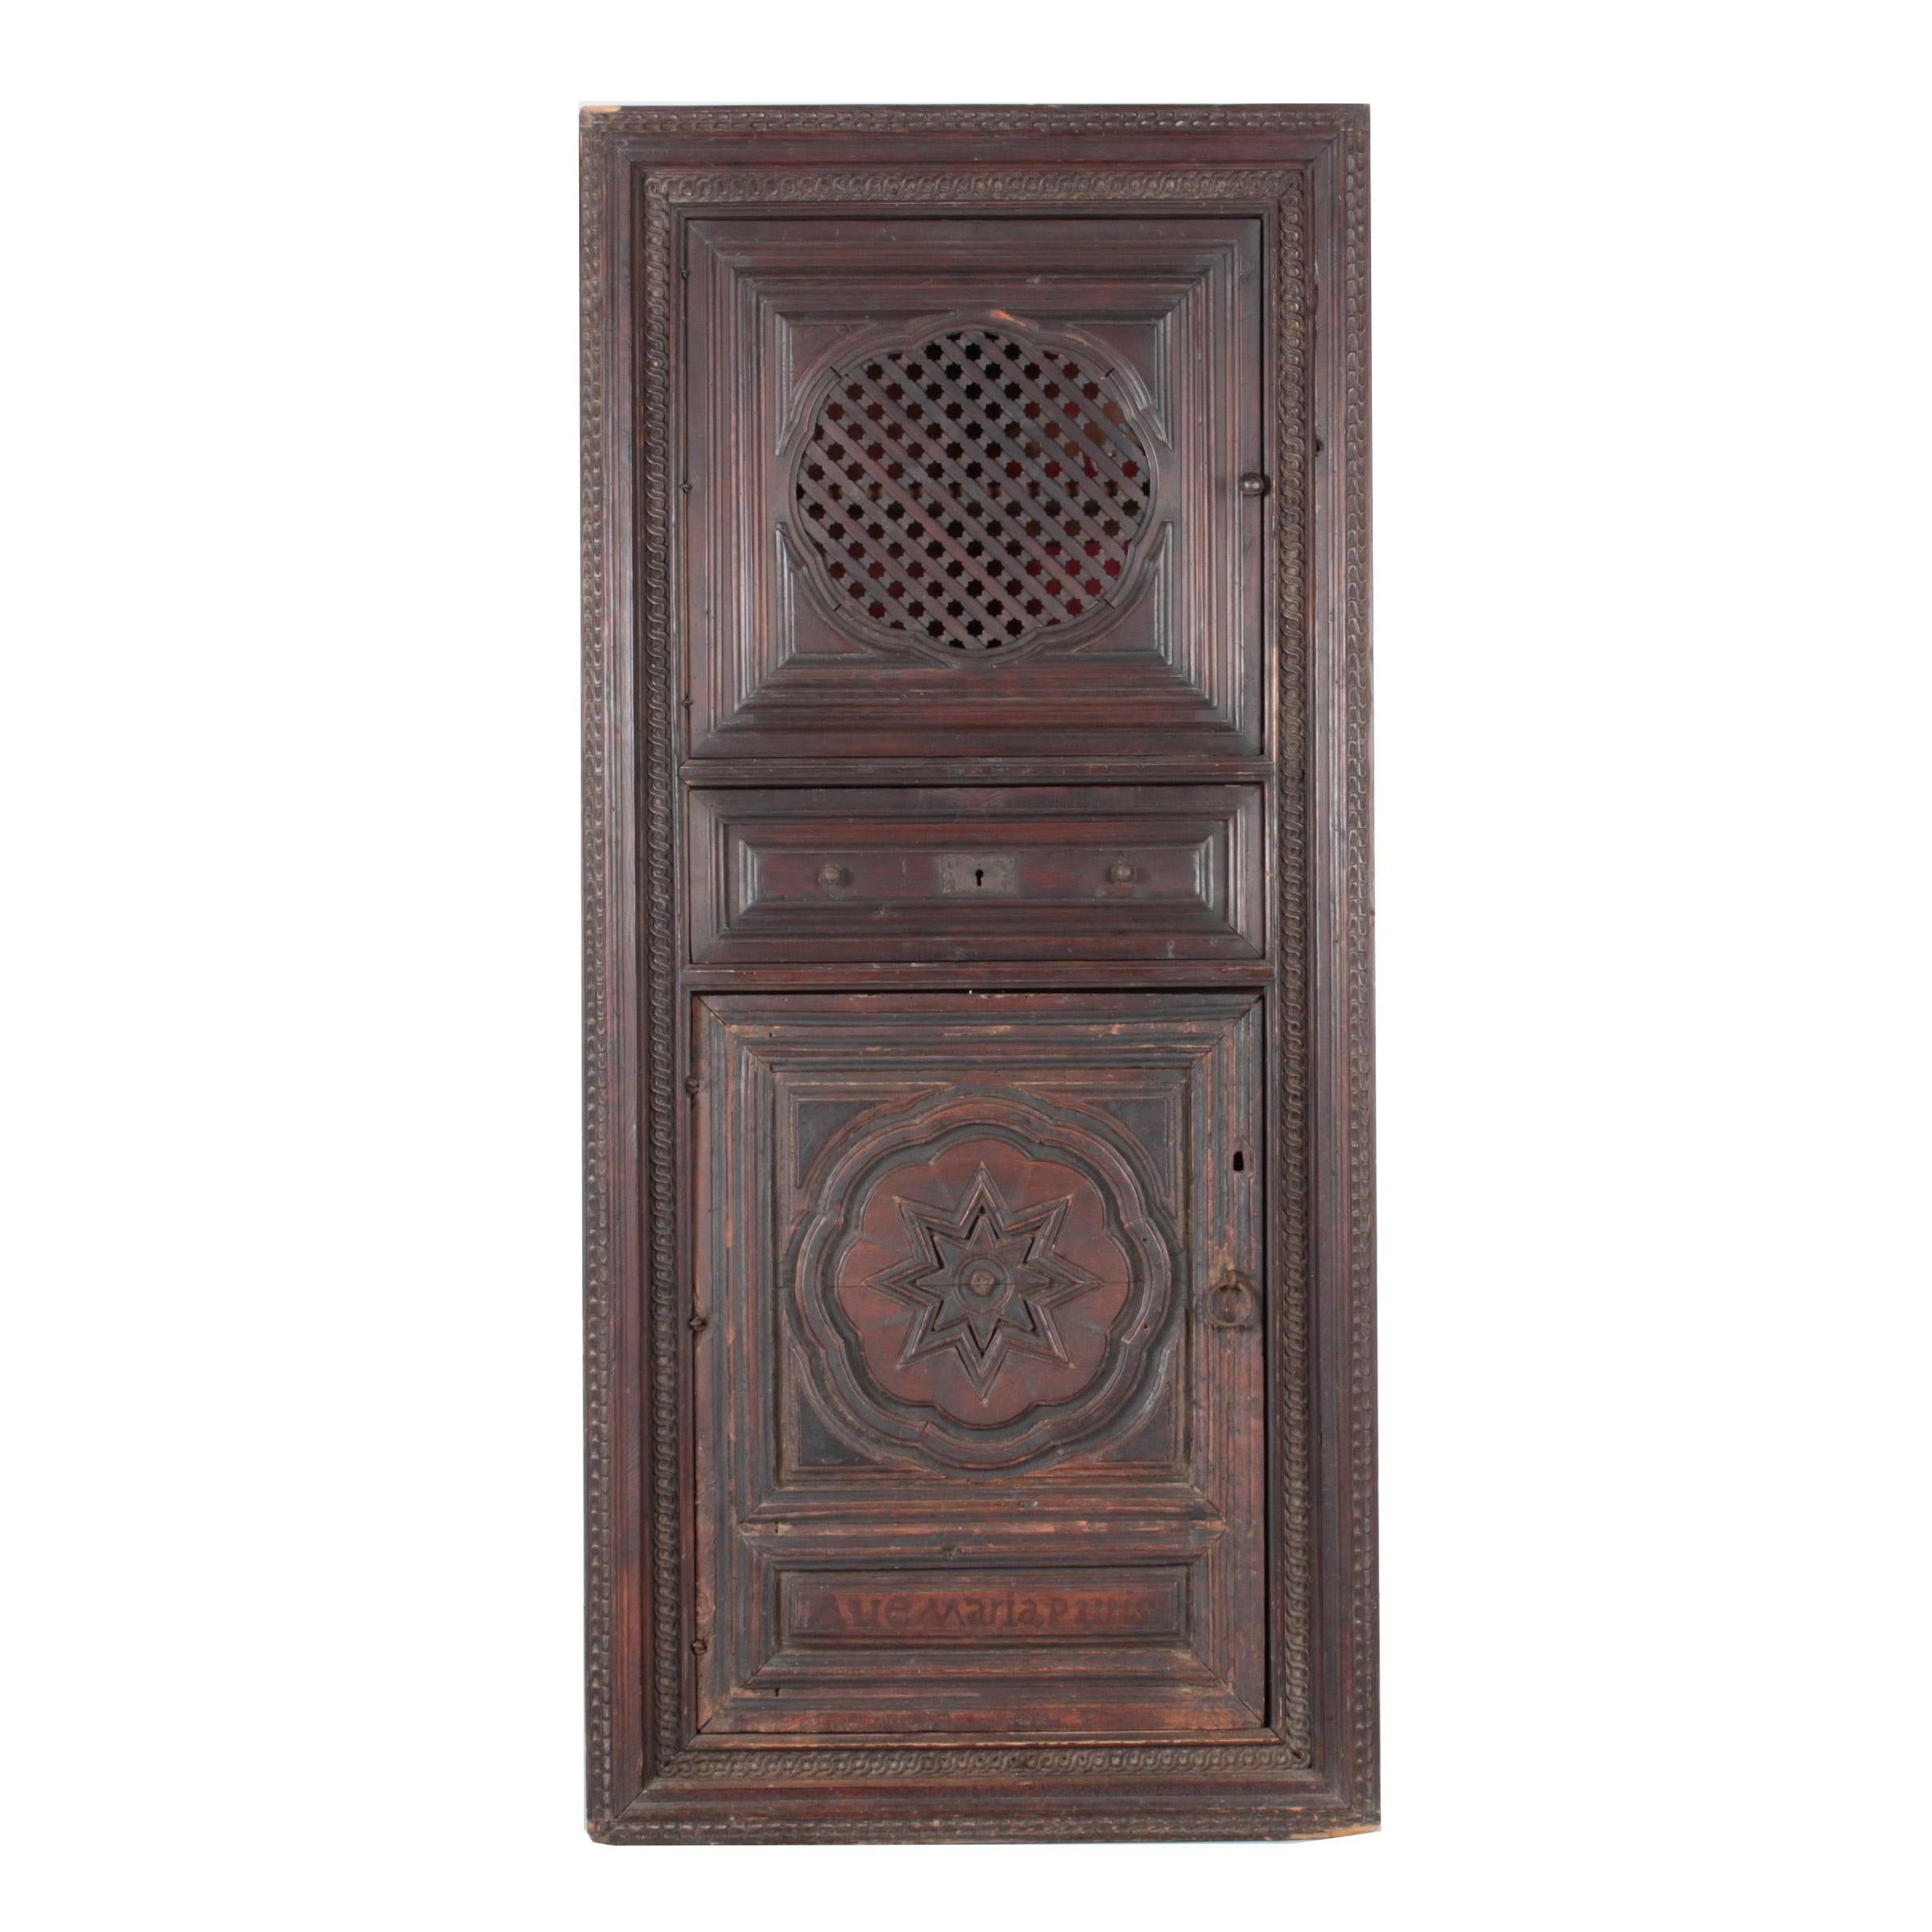 Spanish Colonial Style Pine Corner Cupboard with Antique Walnut Door Panel